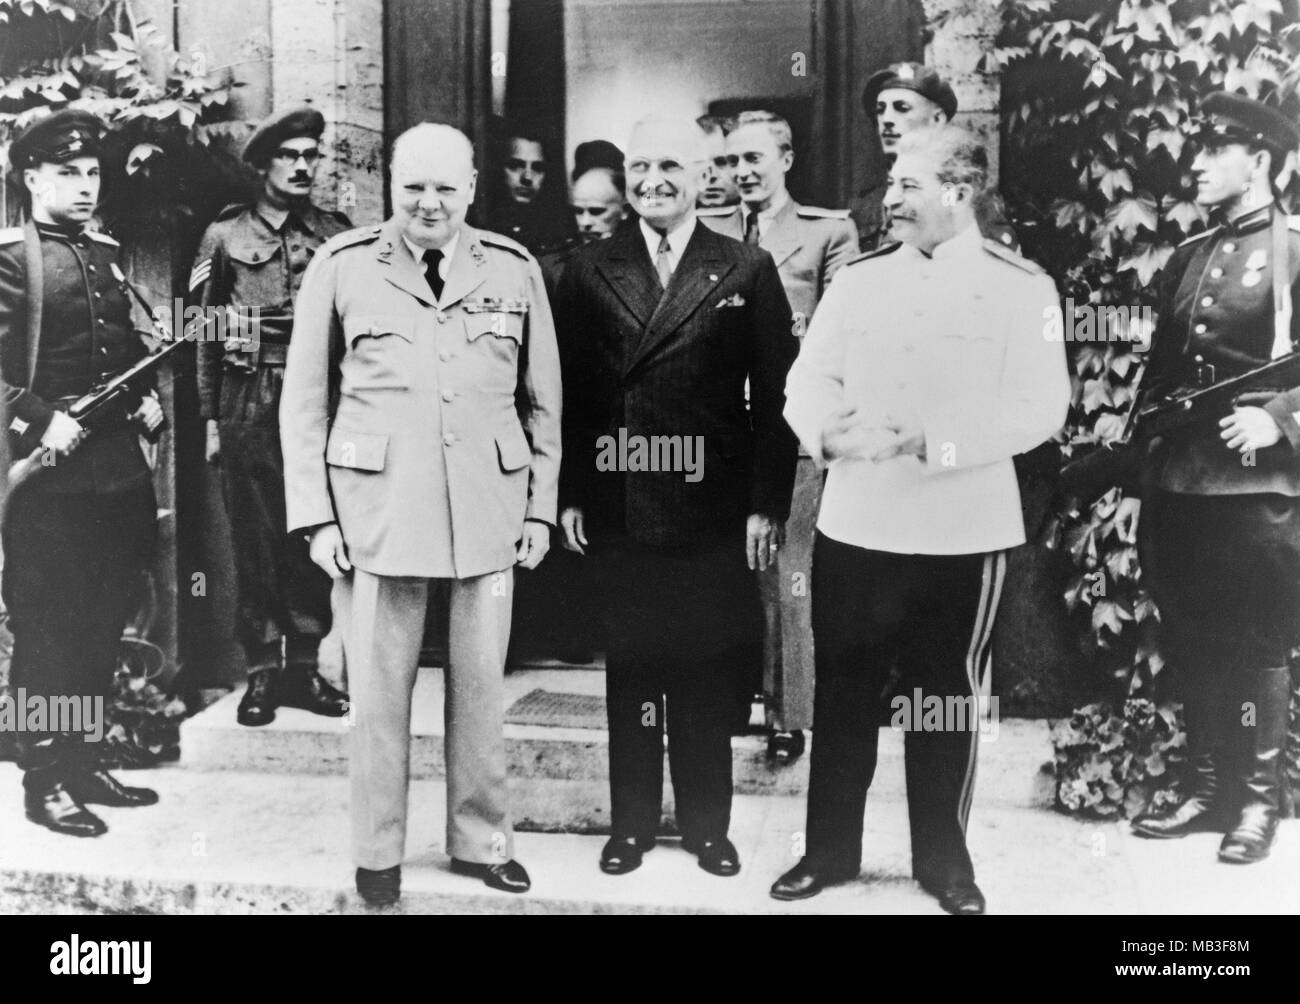 Winston Churchill, President Harry S. truman, and Joseph Stalin, at the Potsdam Conference of 1945.The Potsdam Conference was held at Cecilienhof, the home of Crown Prince Wilhelm, in Potsdam, occupied Germany, from 17 July to 2 August 1945. In some older documents it is also referred to as the Berlin Conference of the Three Heads of Government of the USSR, USA and UK. The participants were the Soviet Union, the United Kingdom, and the United States, represented by Communist Party General Secretary Joseph Stalin, Prime Minister Winston Churchill and, US President Harry S. Truman. - Stock Image